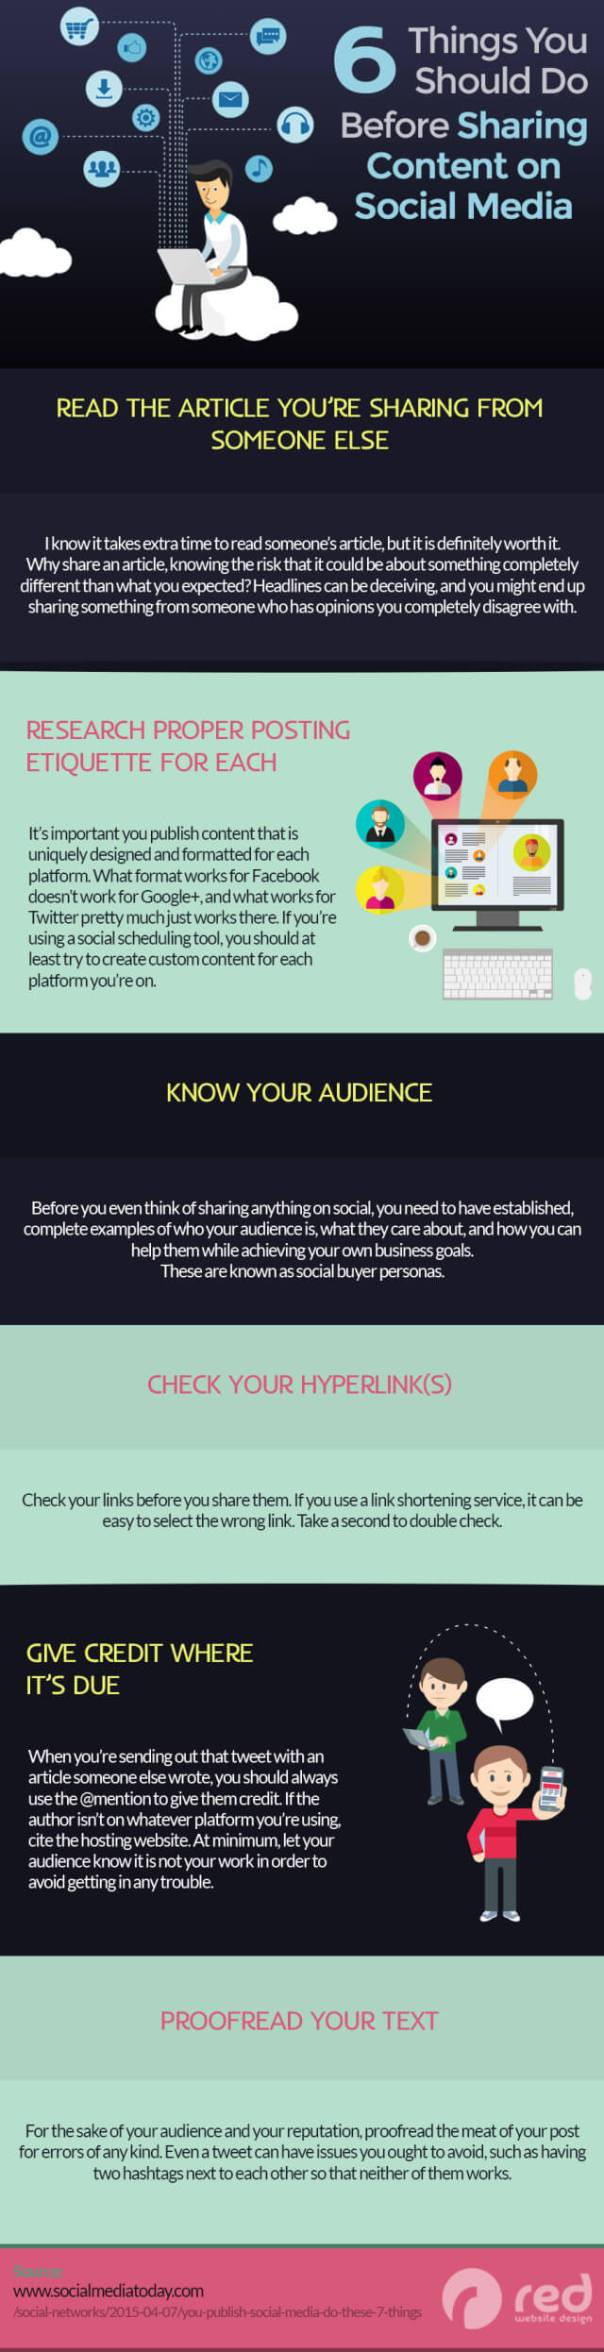 6-things-you-should-do-before-sharing-content-on-social-media1